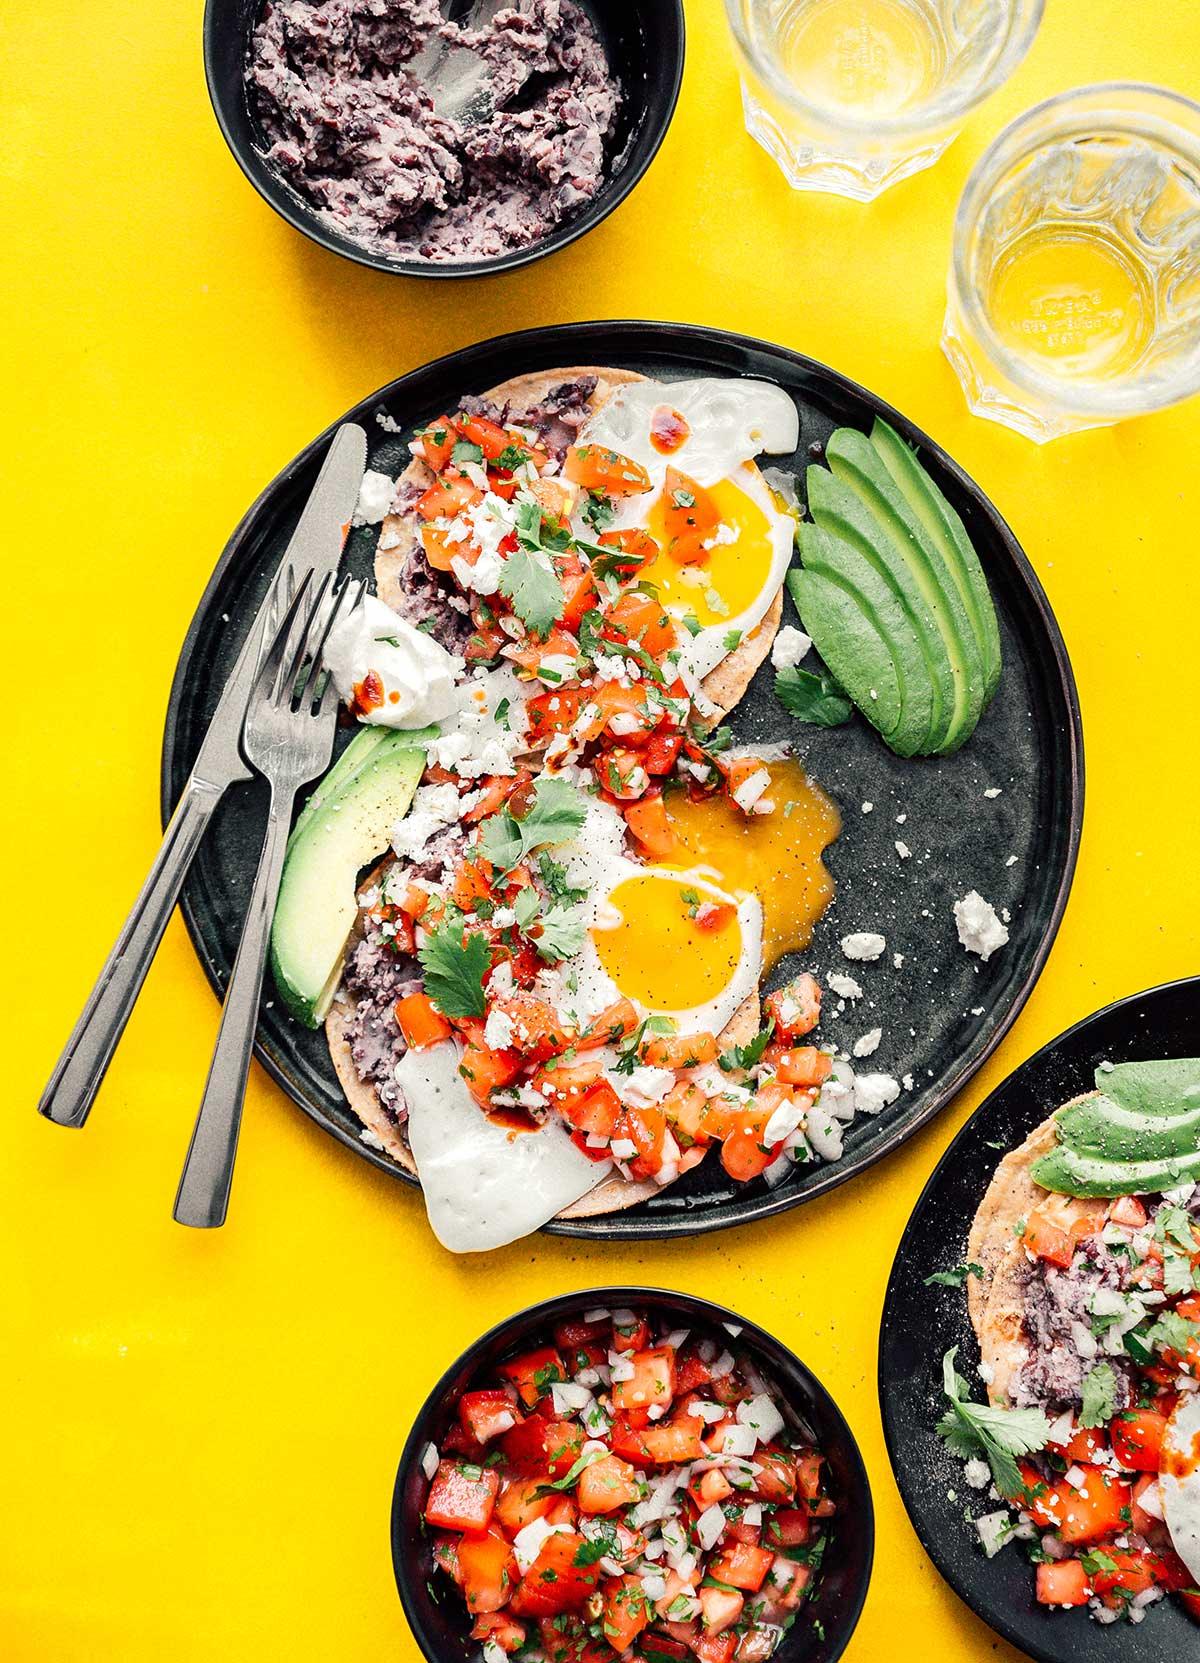 Two plates of huevos rancheros accompanied by black beans, water, and pico de gallo